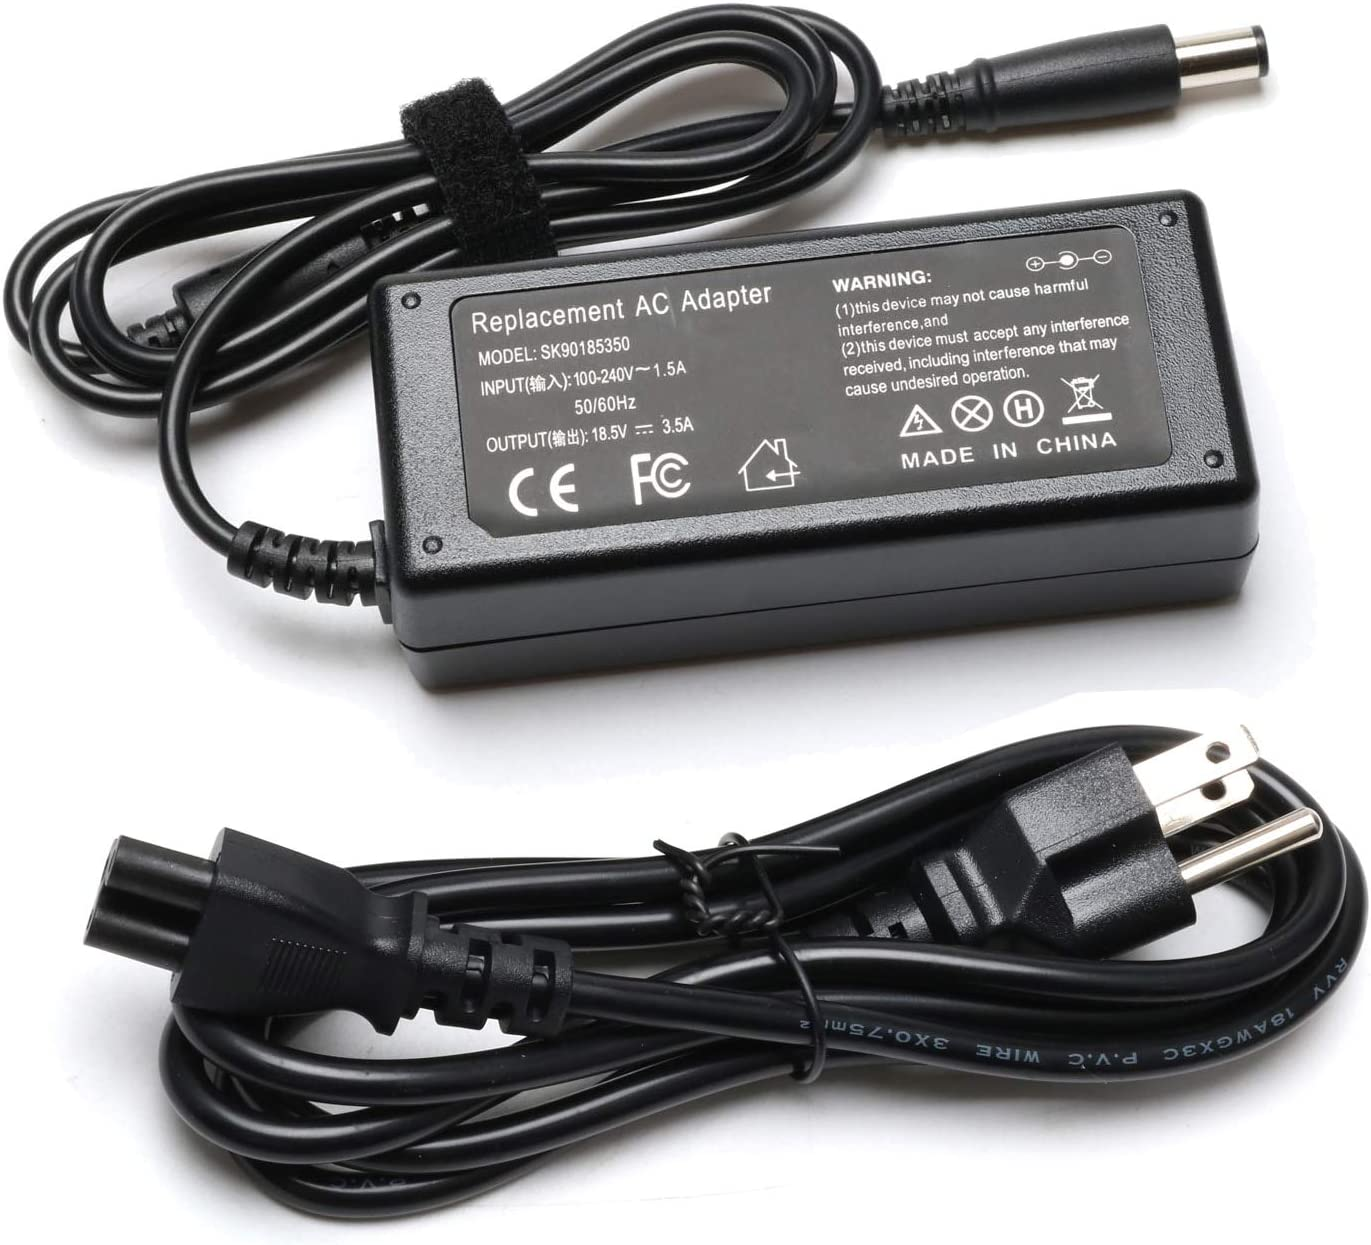 65W AC Adapter Laptop Charger for HP 608425-002 G42 G50 G56 G60 G61 G62 G70 G71 G72 Notebook Charger 2000-2D49WM G60-235dx G60-535dx G61-511wm G62-435dx G62-355dx G70-460us G71-340us Power Supply Cord